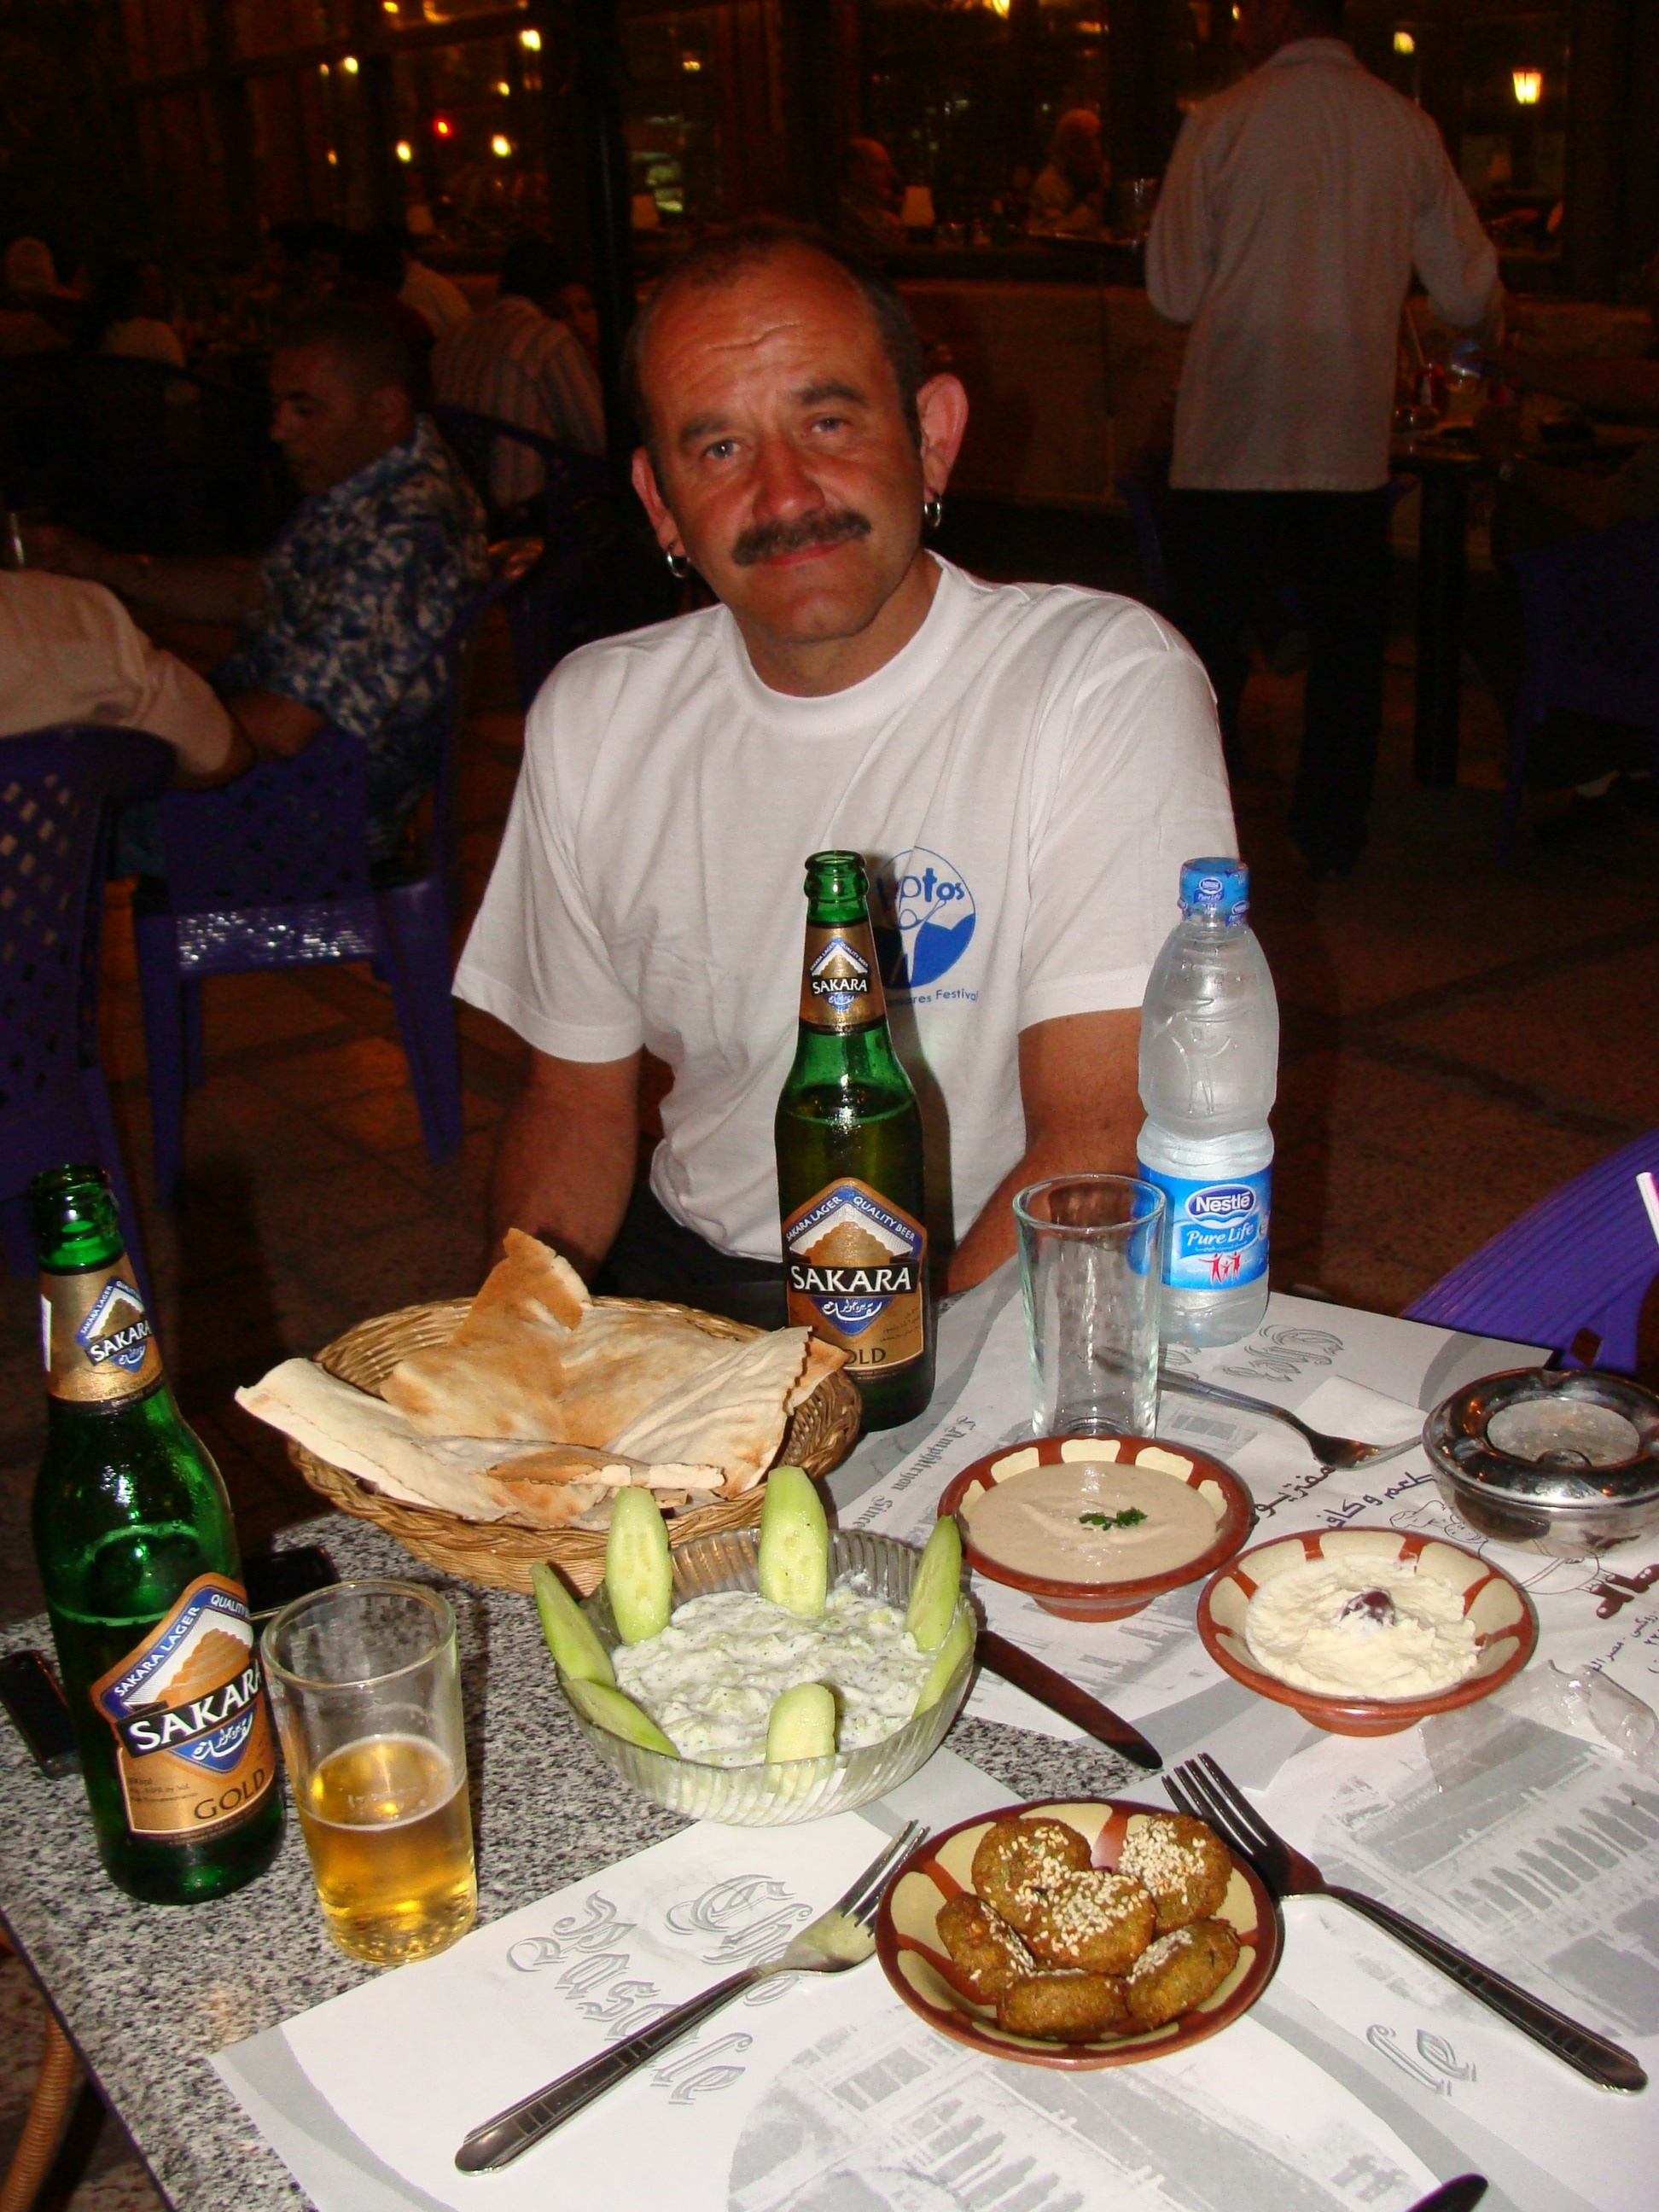 Dave wasn't too impressed with the Egyptian starters, but the kebabs that followed were thankfully received...as was the ice cold lagers.